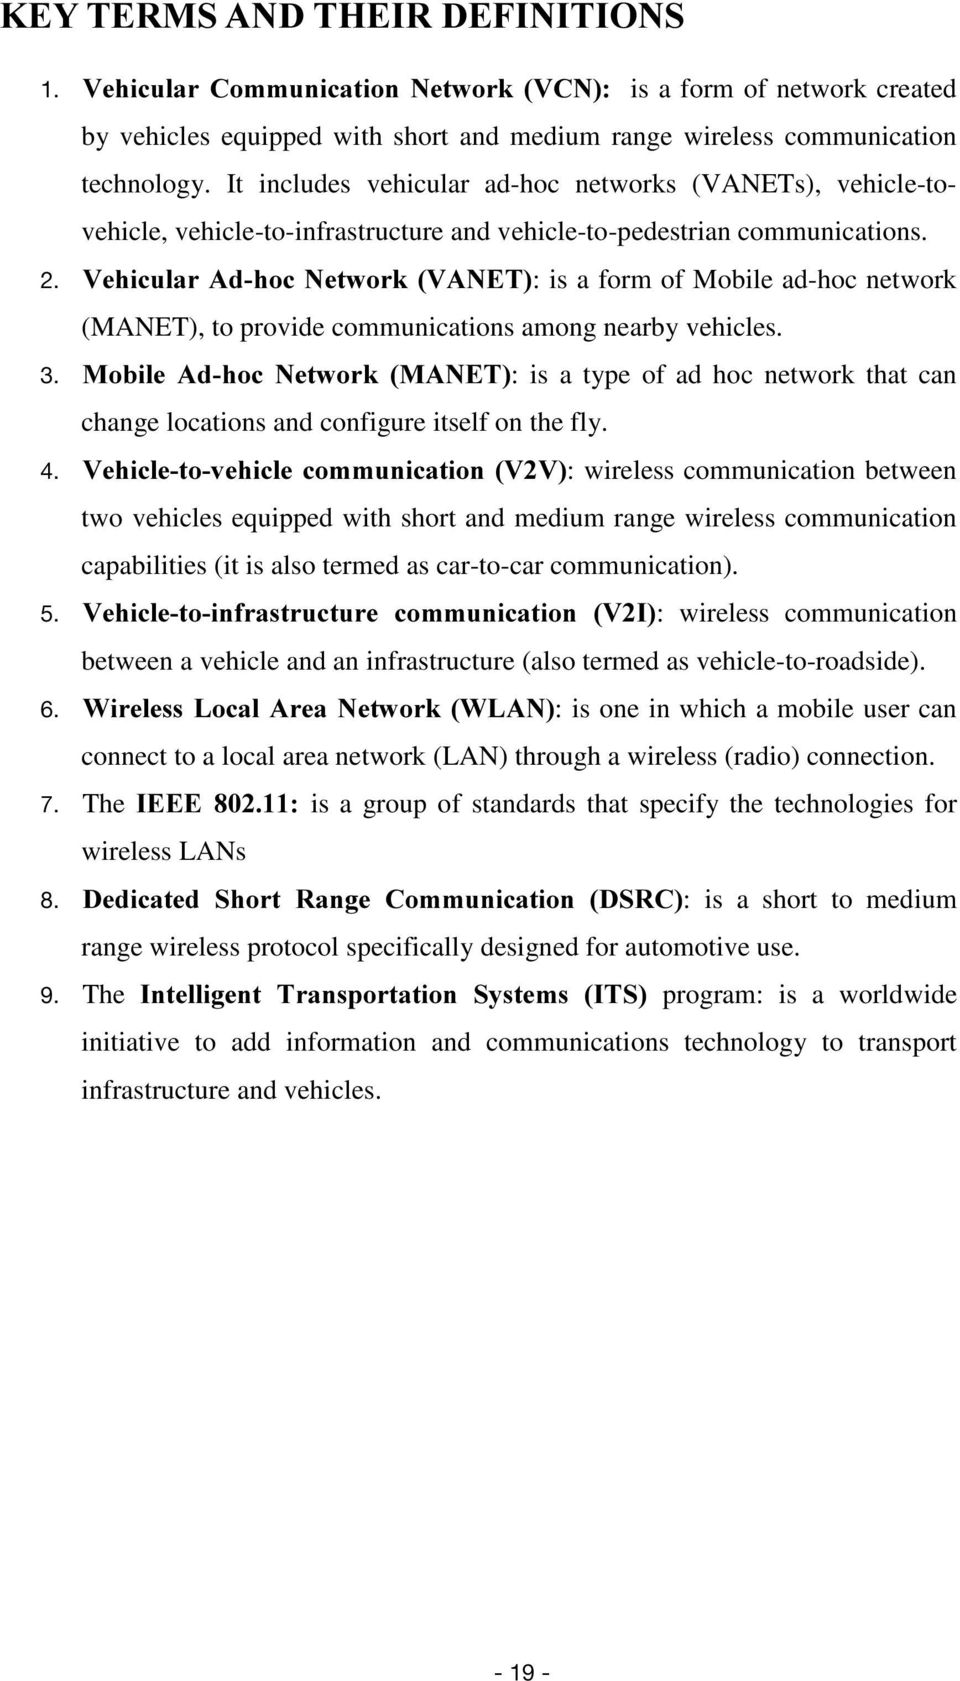 9HKLFXODU$GKRF1HWZRUN9$1(7: is a form of Mobile ad-hoc network (MANET), to provide communications among nearby vehicles.